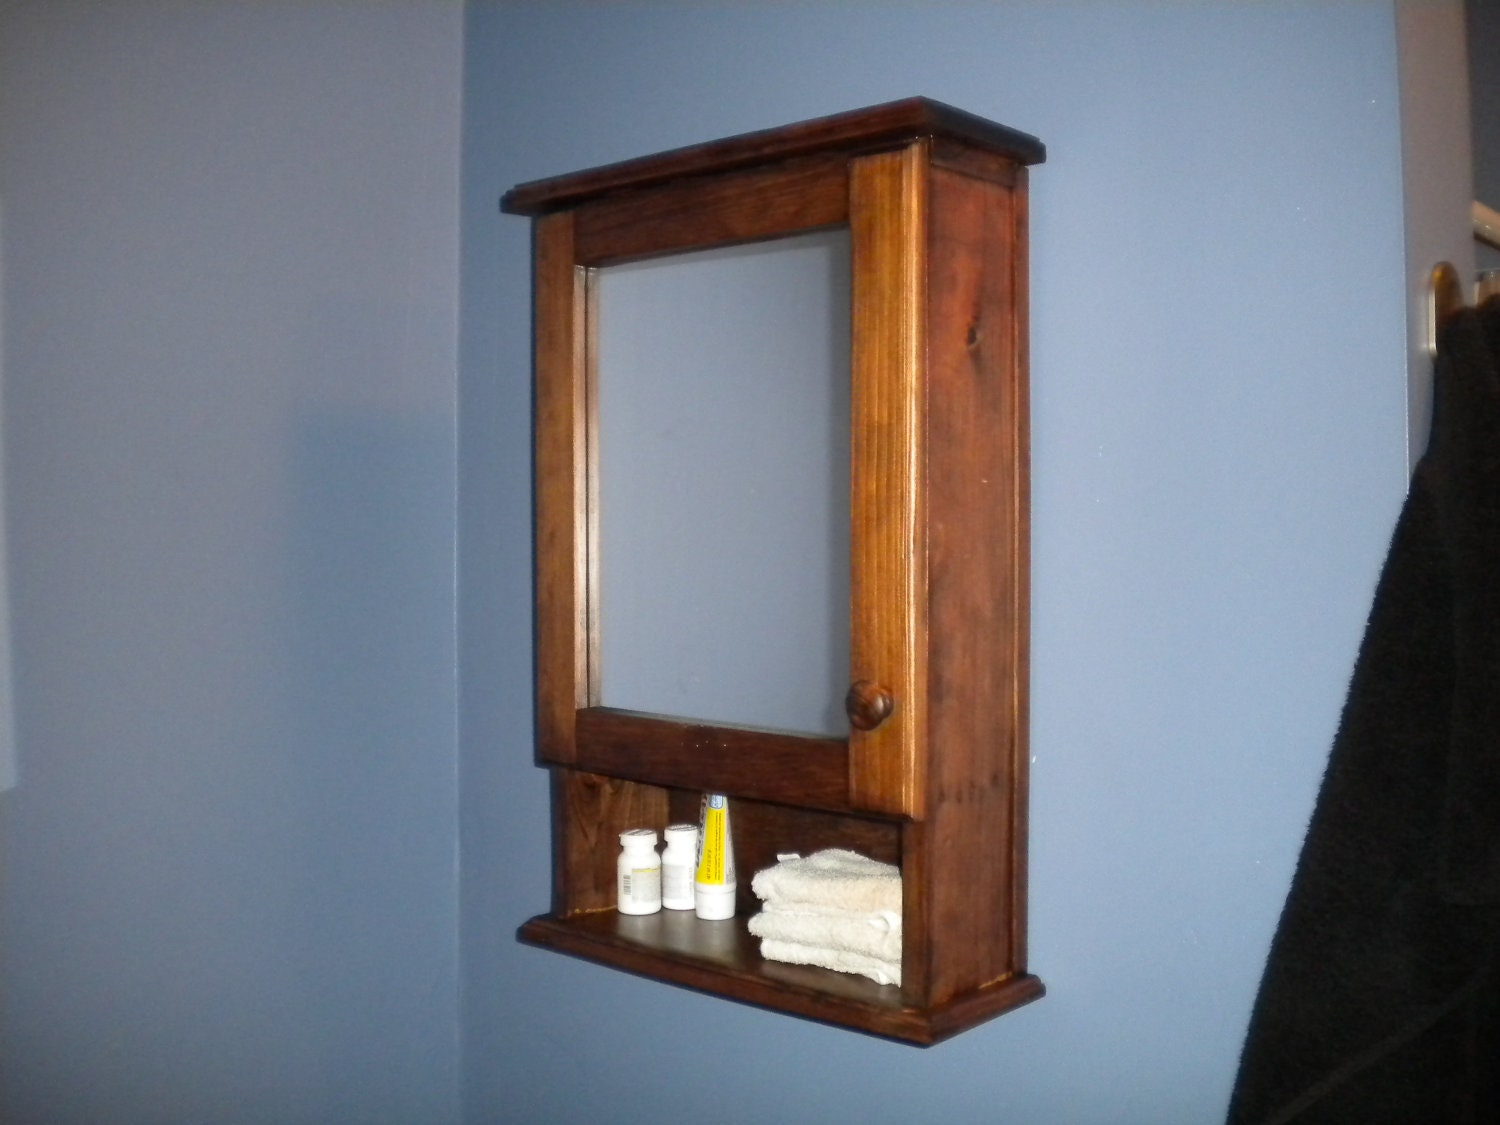 Mirrored Bathroom Medicine Cabinet By RaysCustomWoodwork